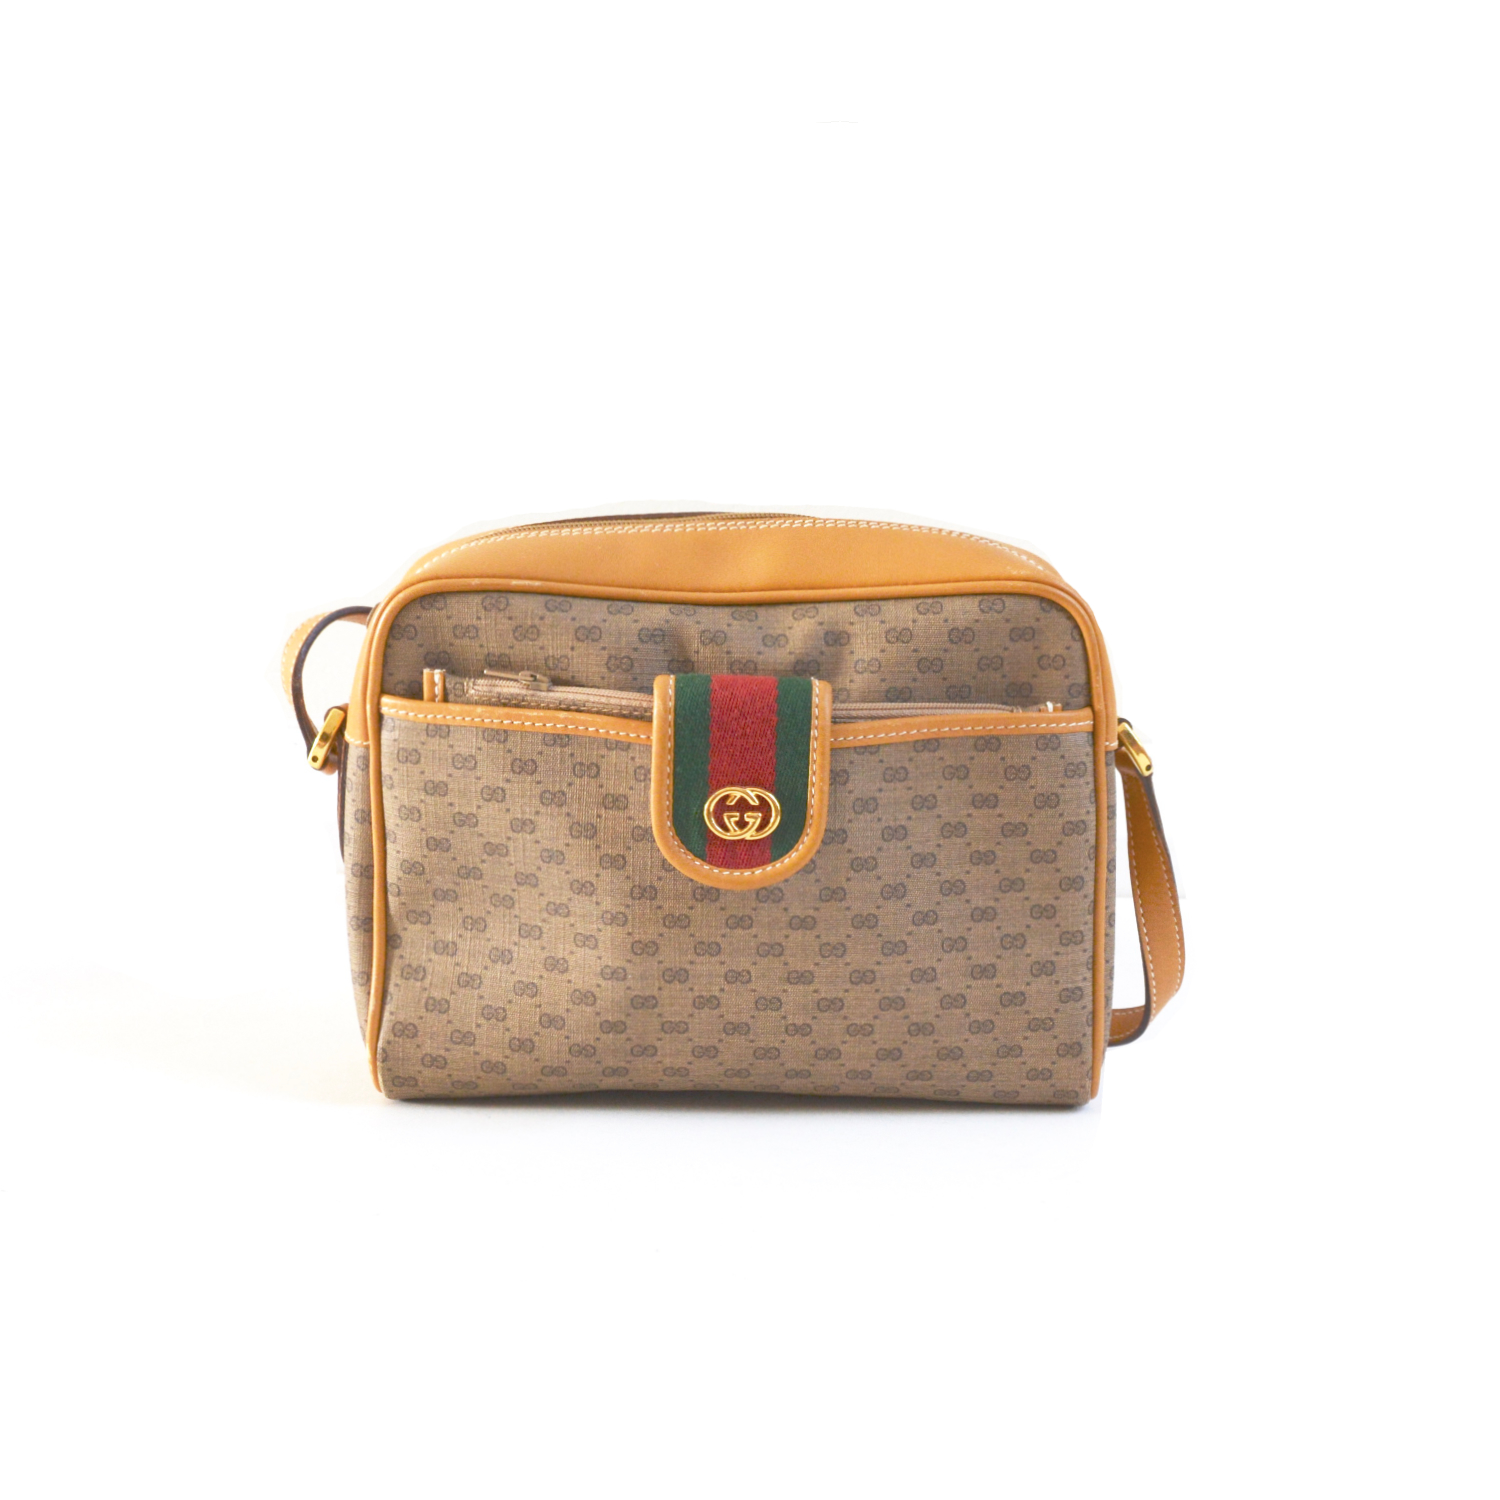 Gucci 1980s Mini GG Monogram Crossbody Bag | NITRYL